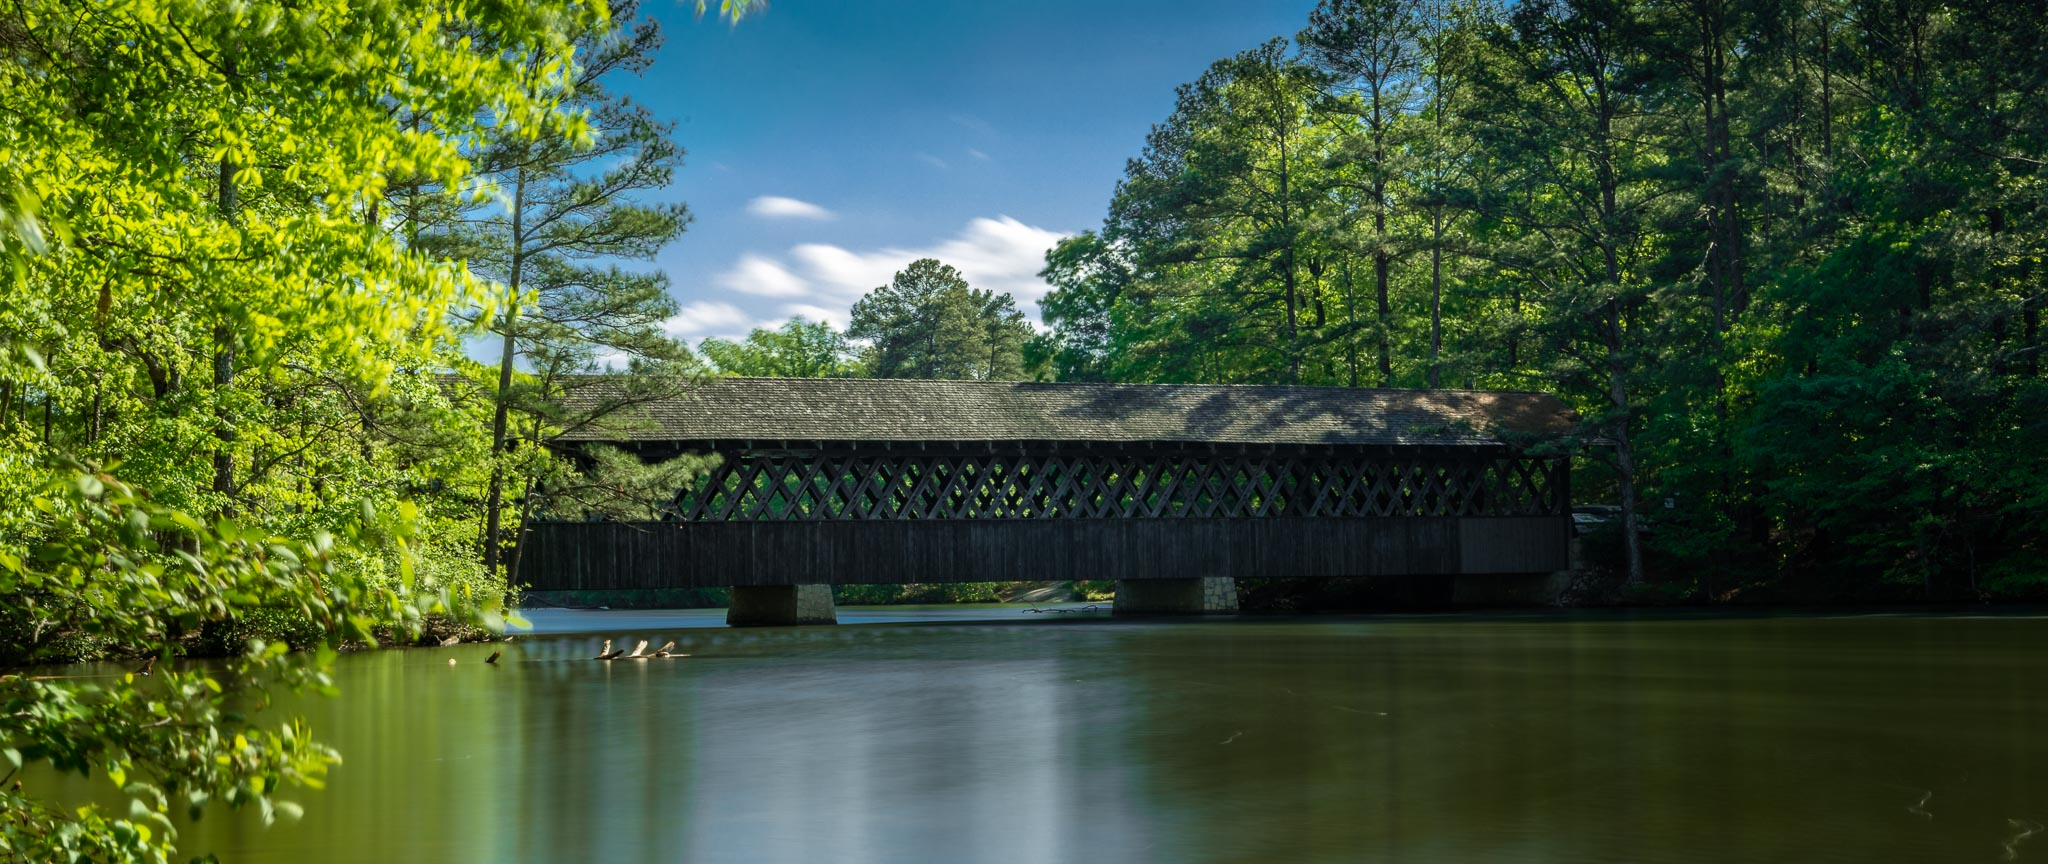 Covered Bridge at Stone Mountain Park